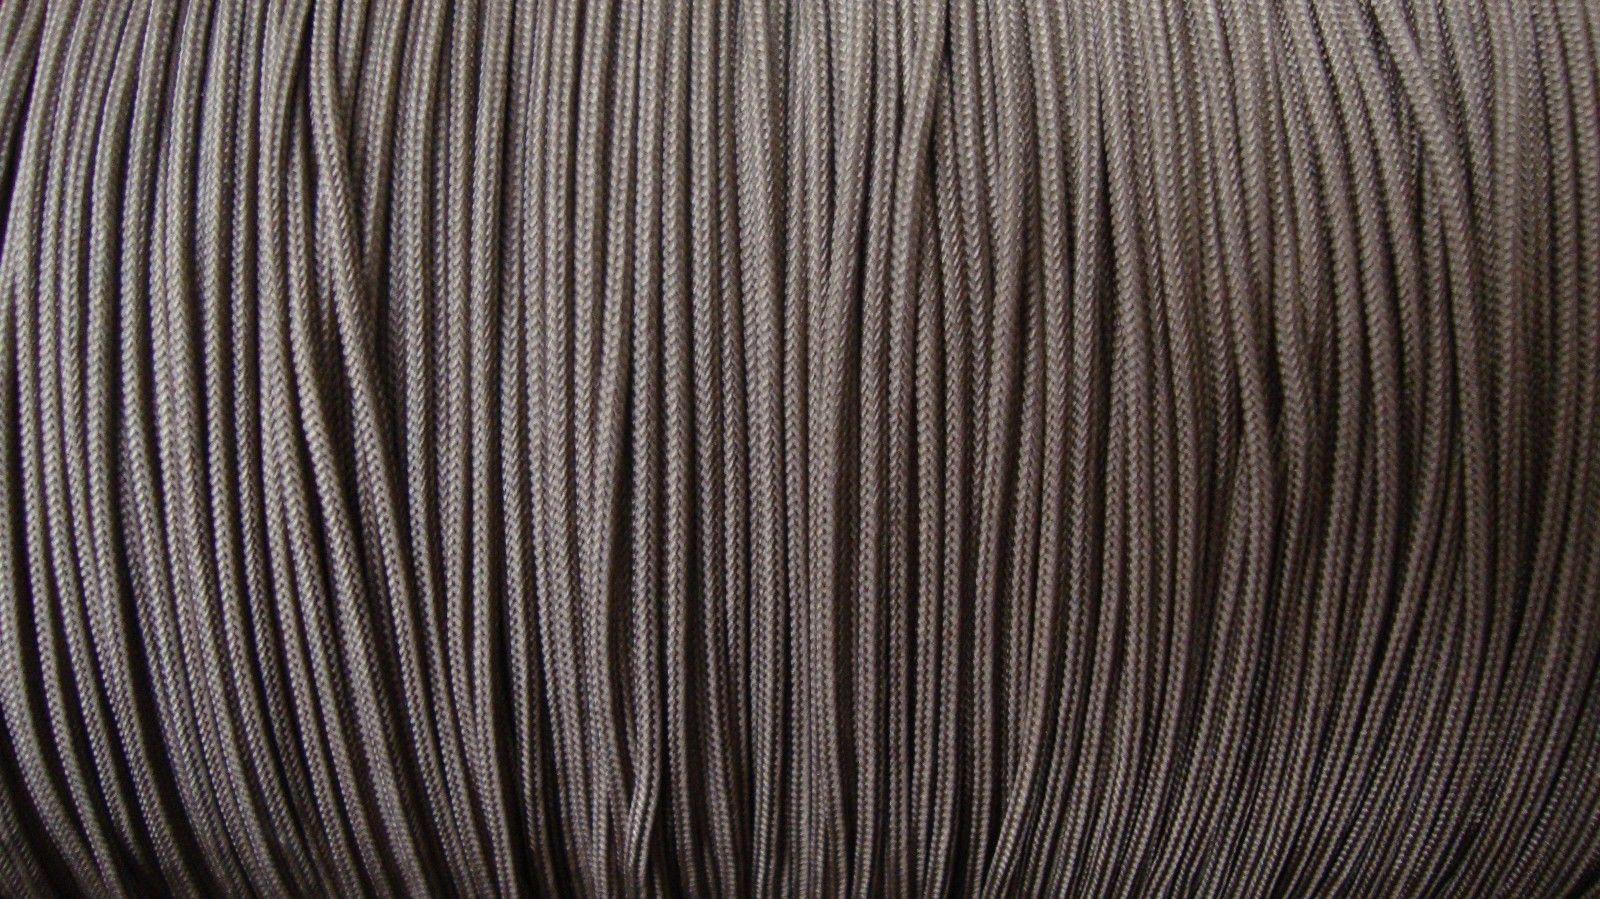 60 FEET:1.8mm CHOCOLATE LIFT CORD for Blinds, Roman Shades and More